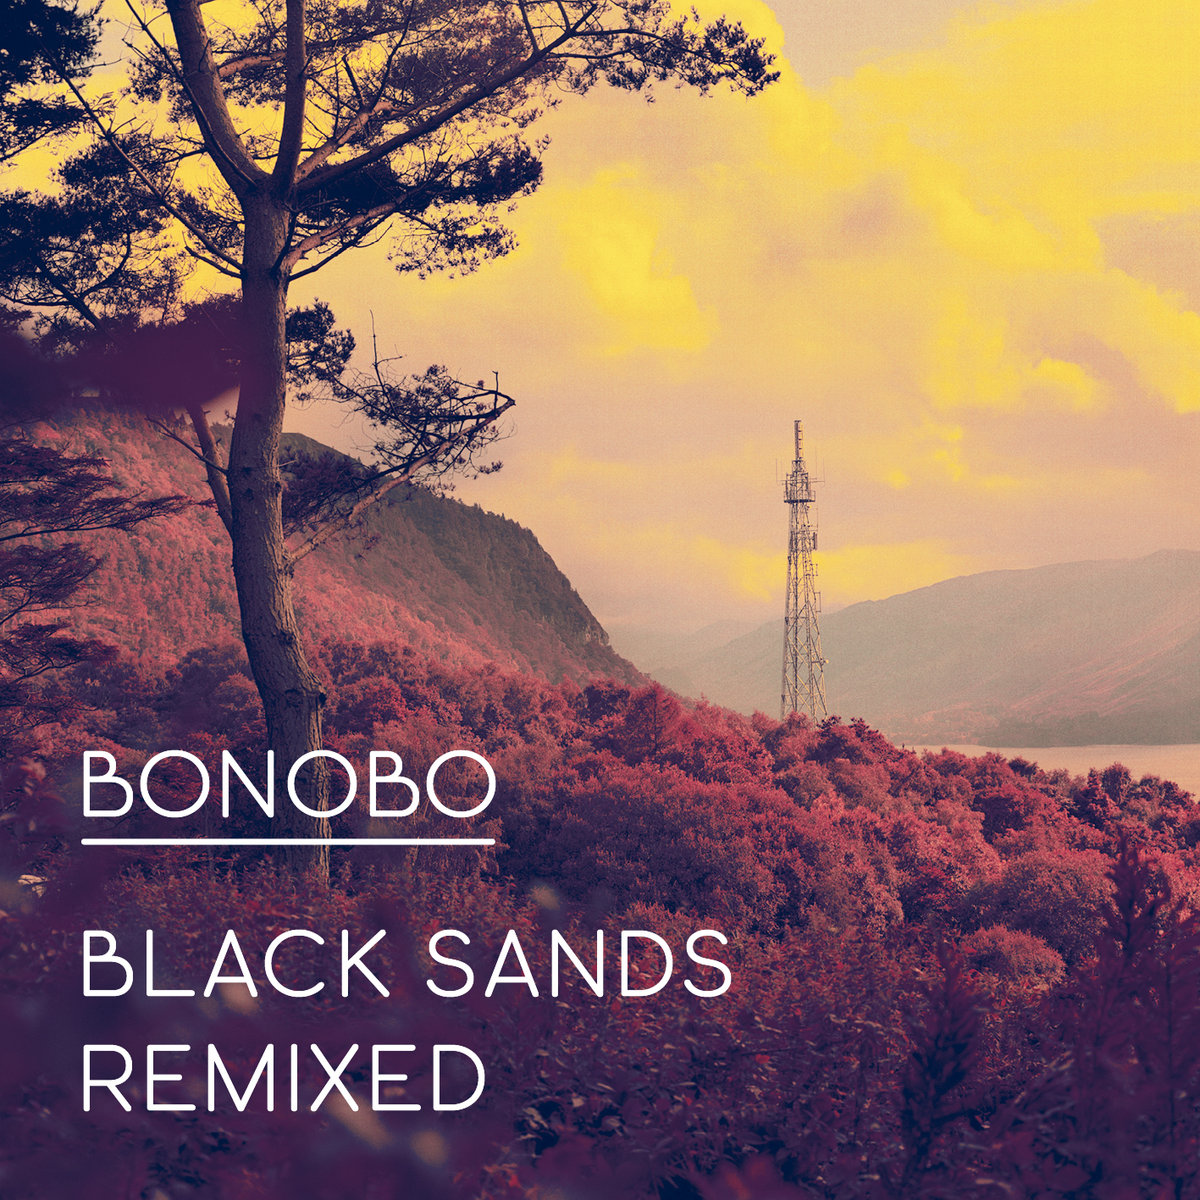 Album cover for Bonobo's Black Sands album